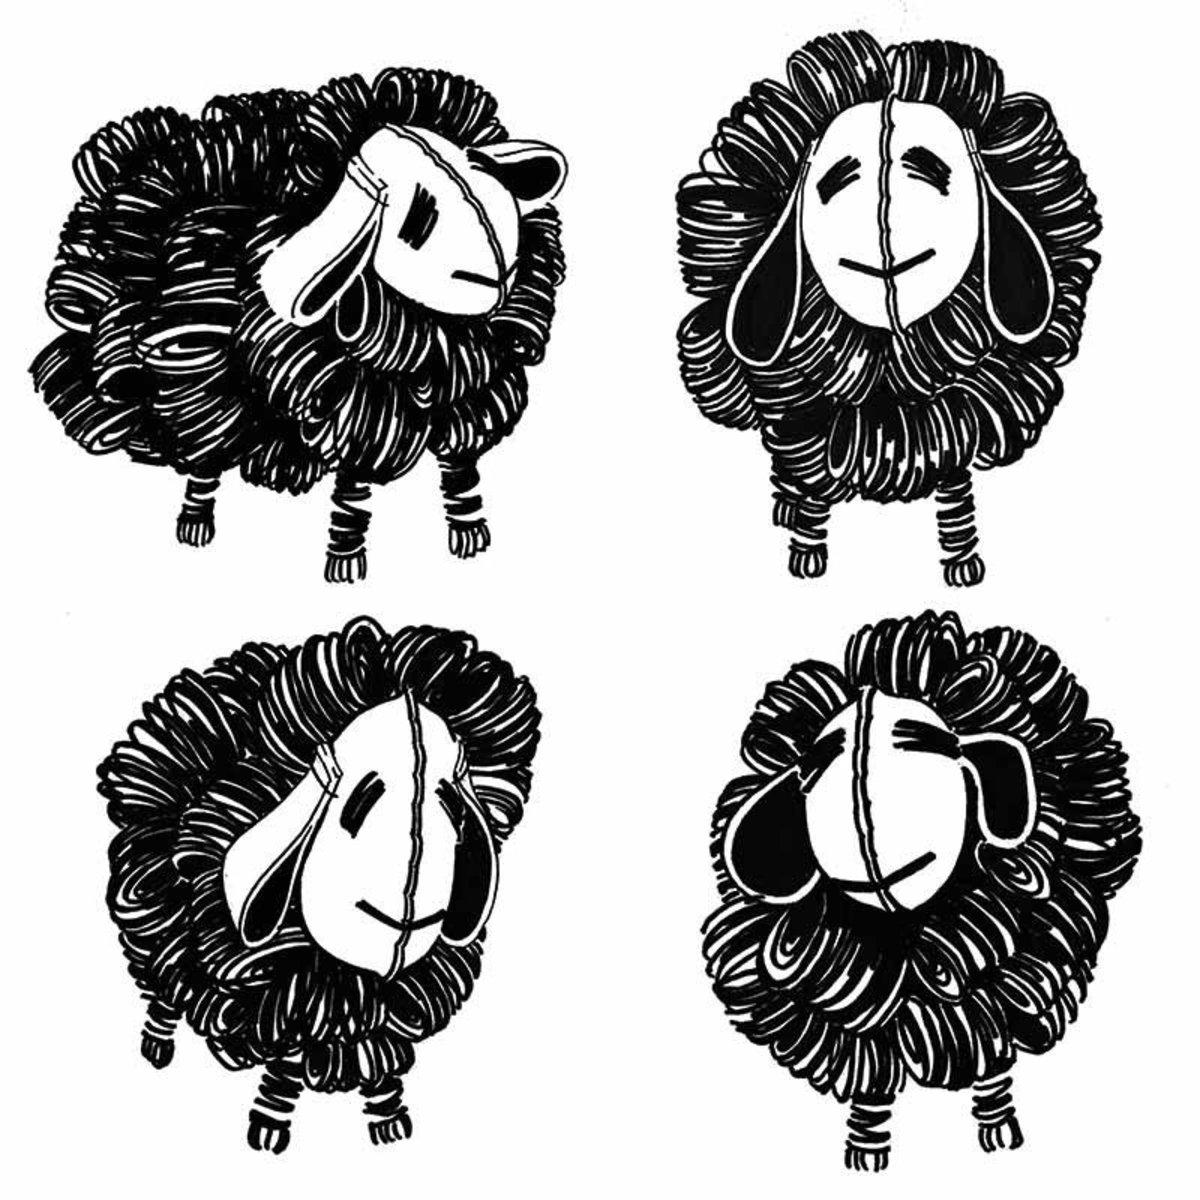 Retro Black And White Sheep Pattern Wall Mural